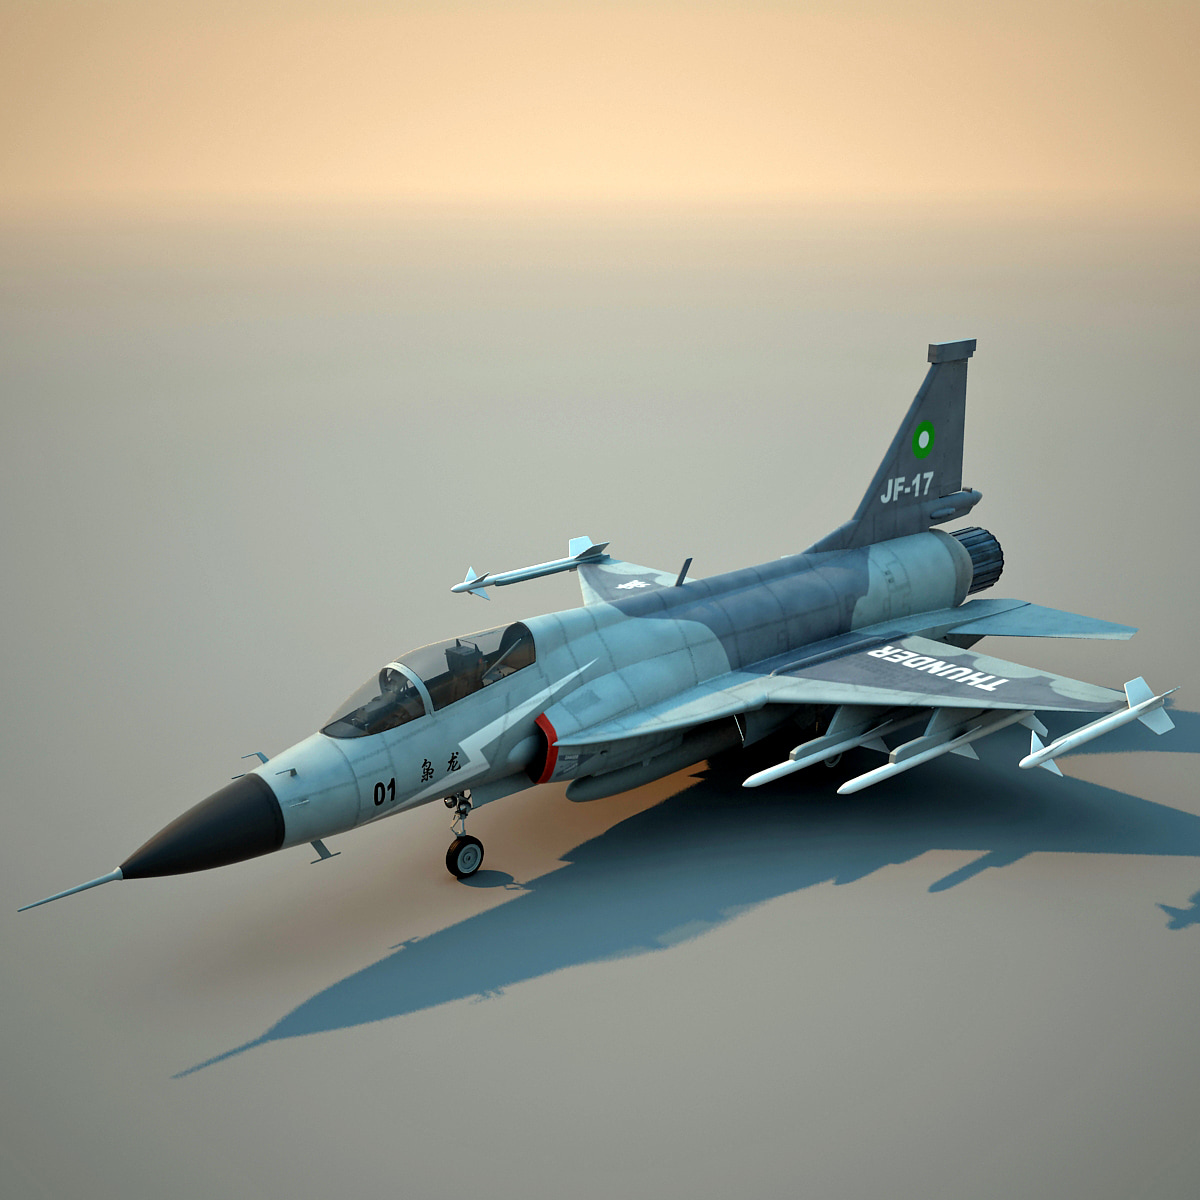 JF_17_Thunder_Fighter_07.jpg